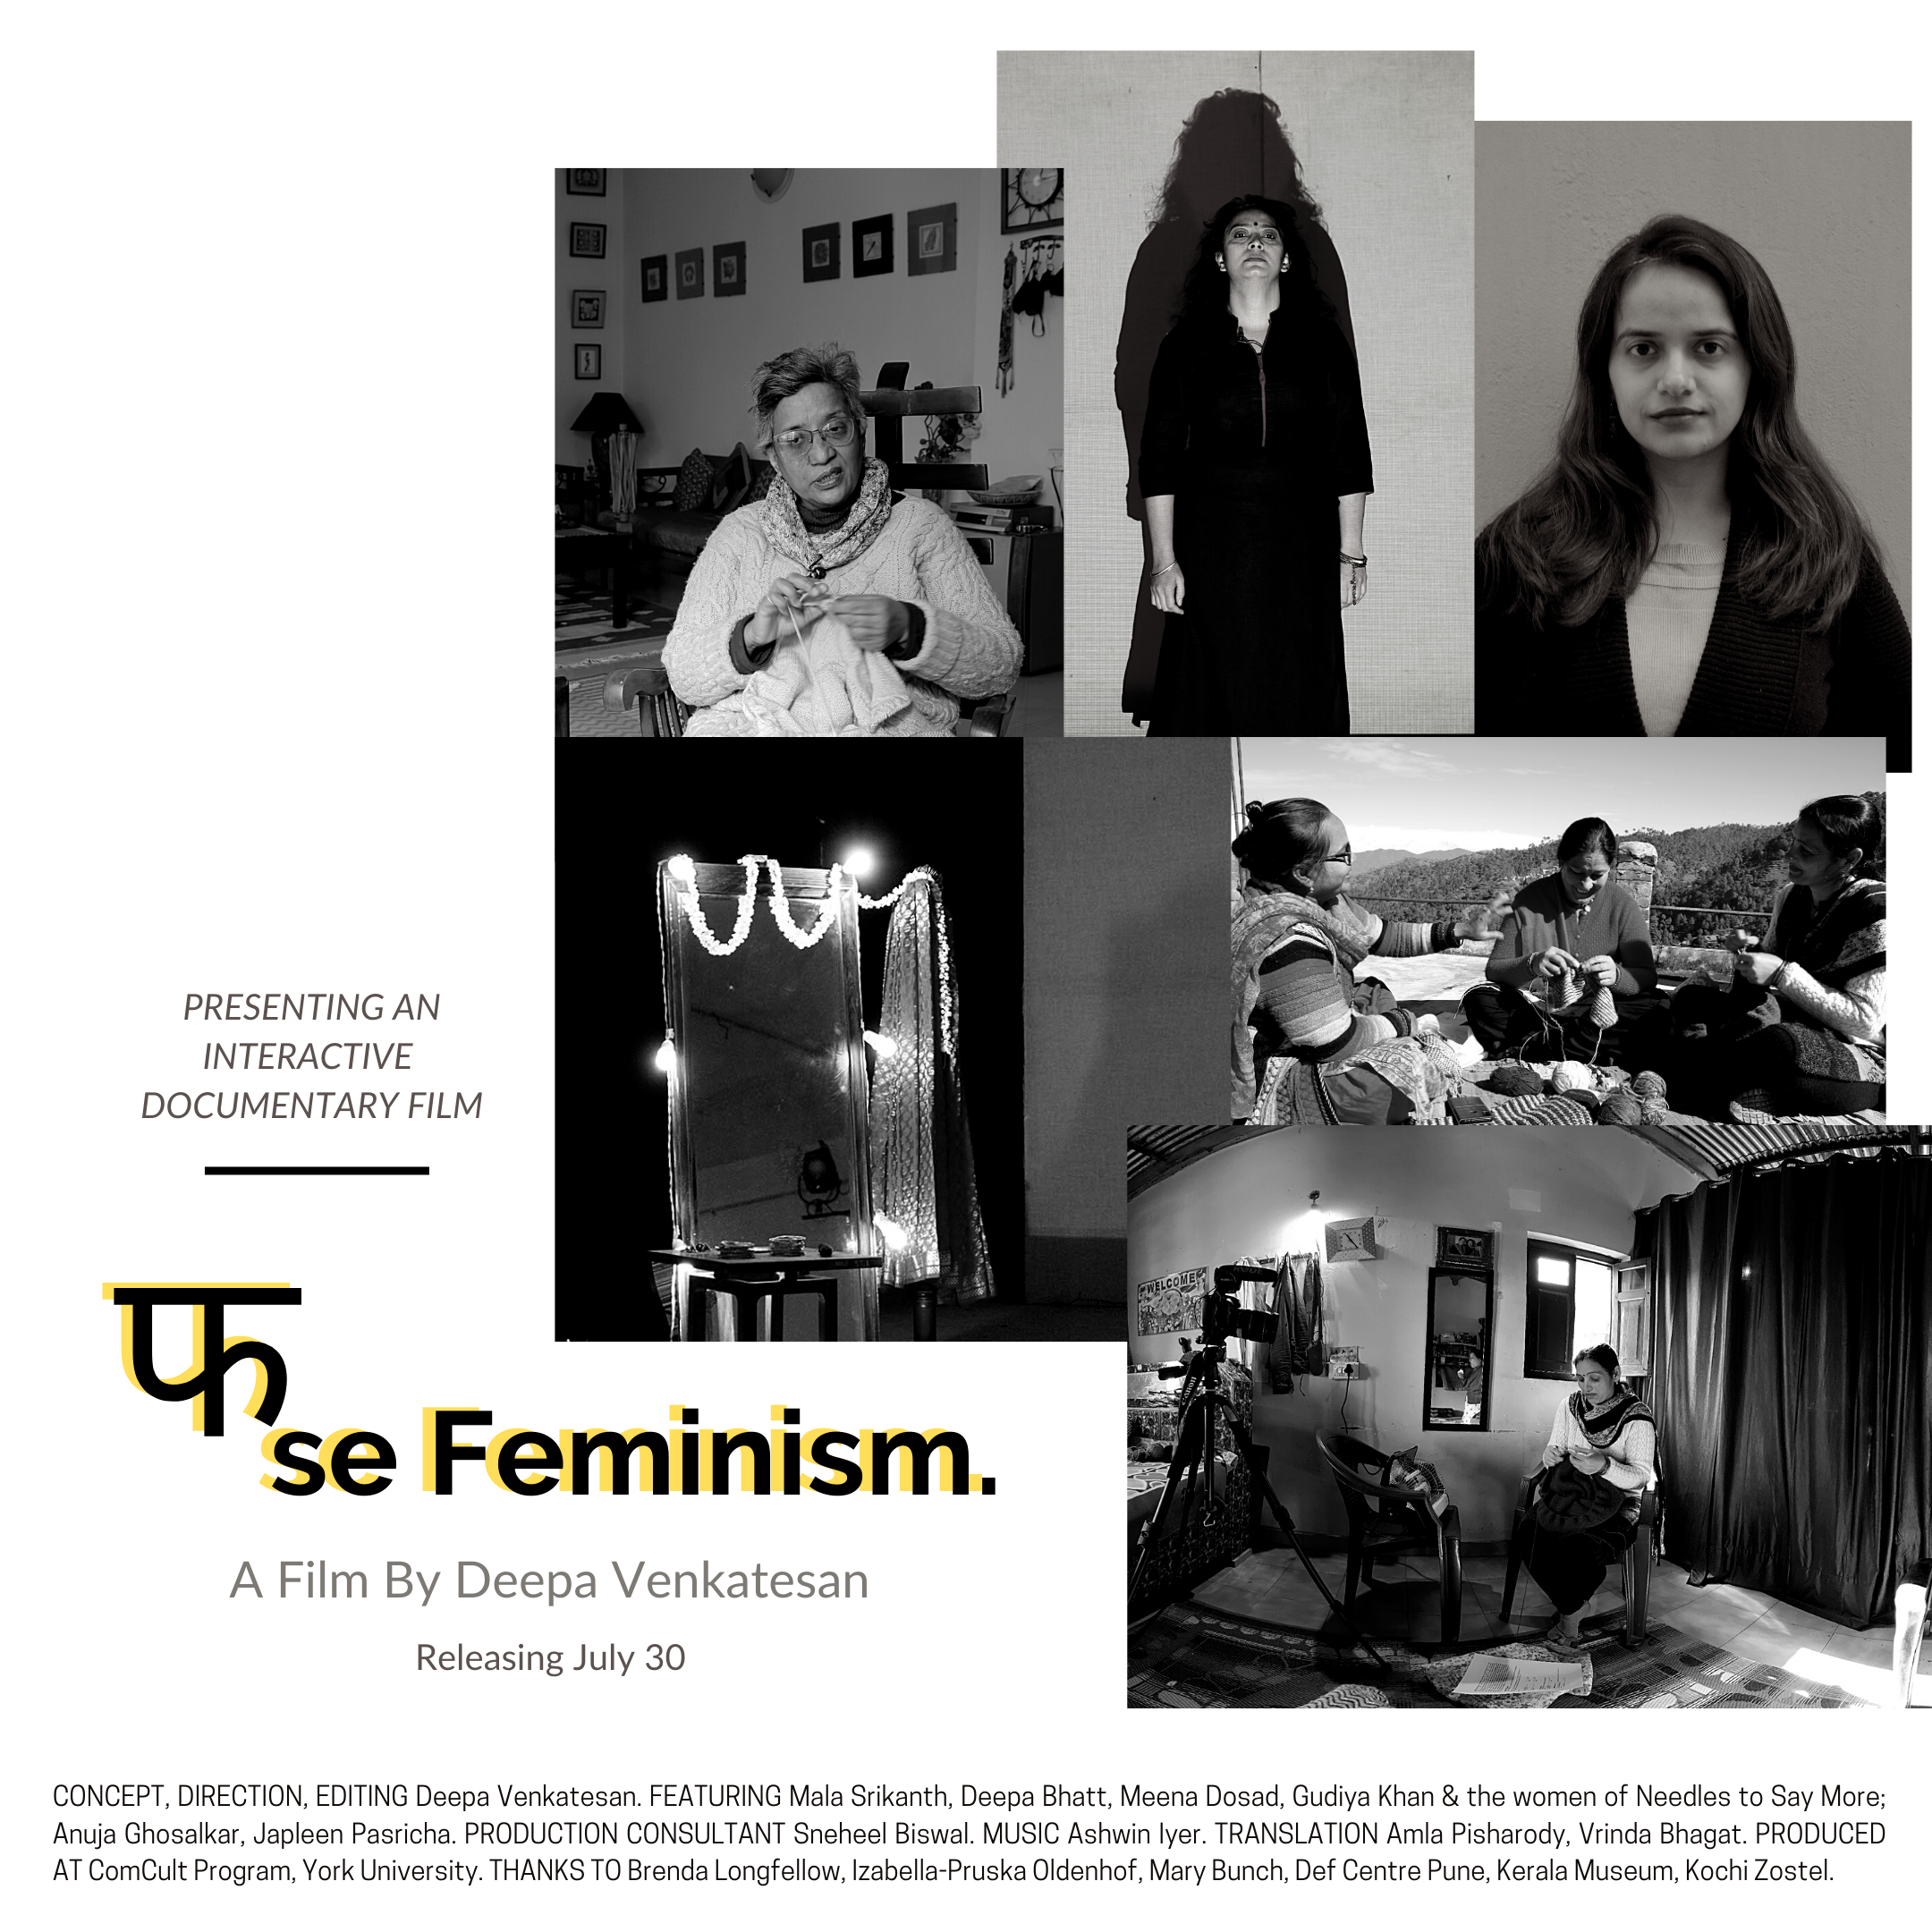 F is for Feminism